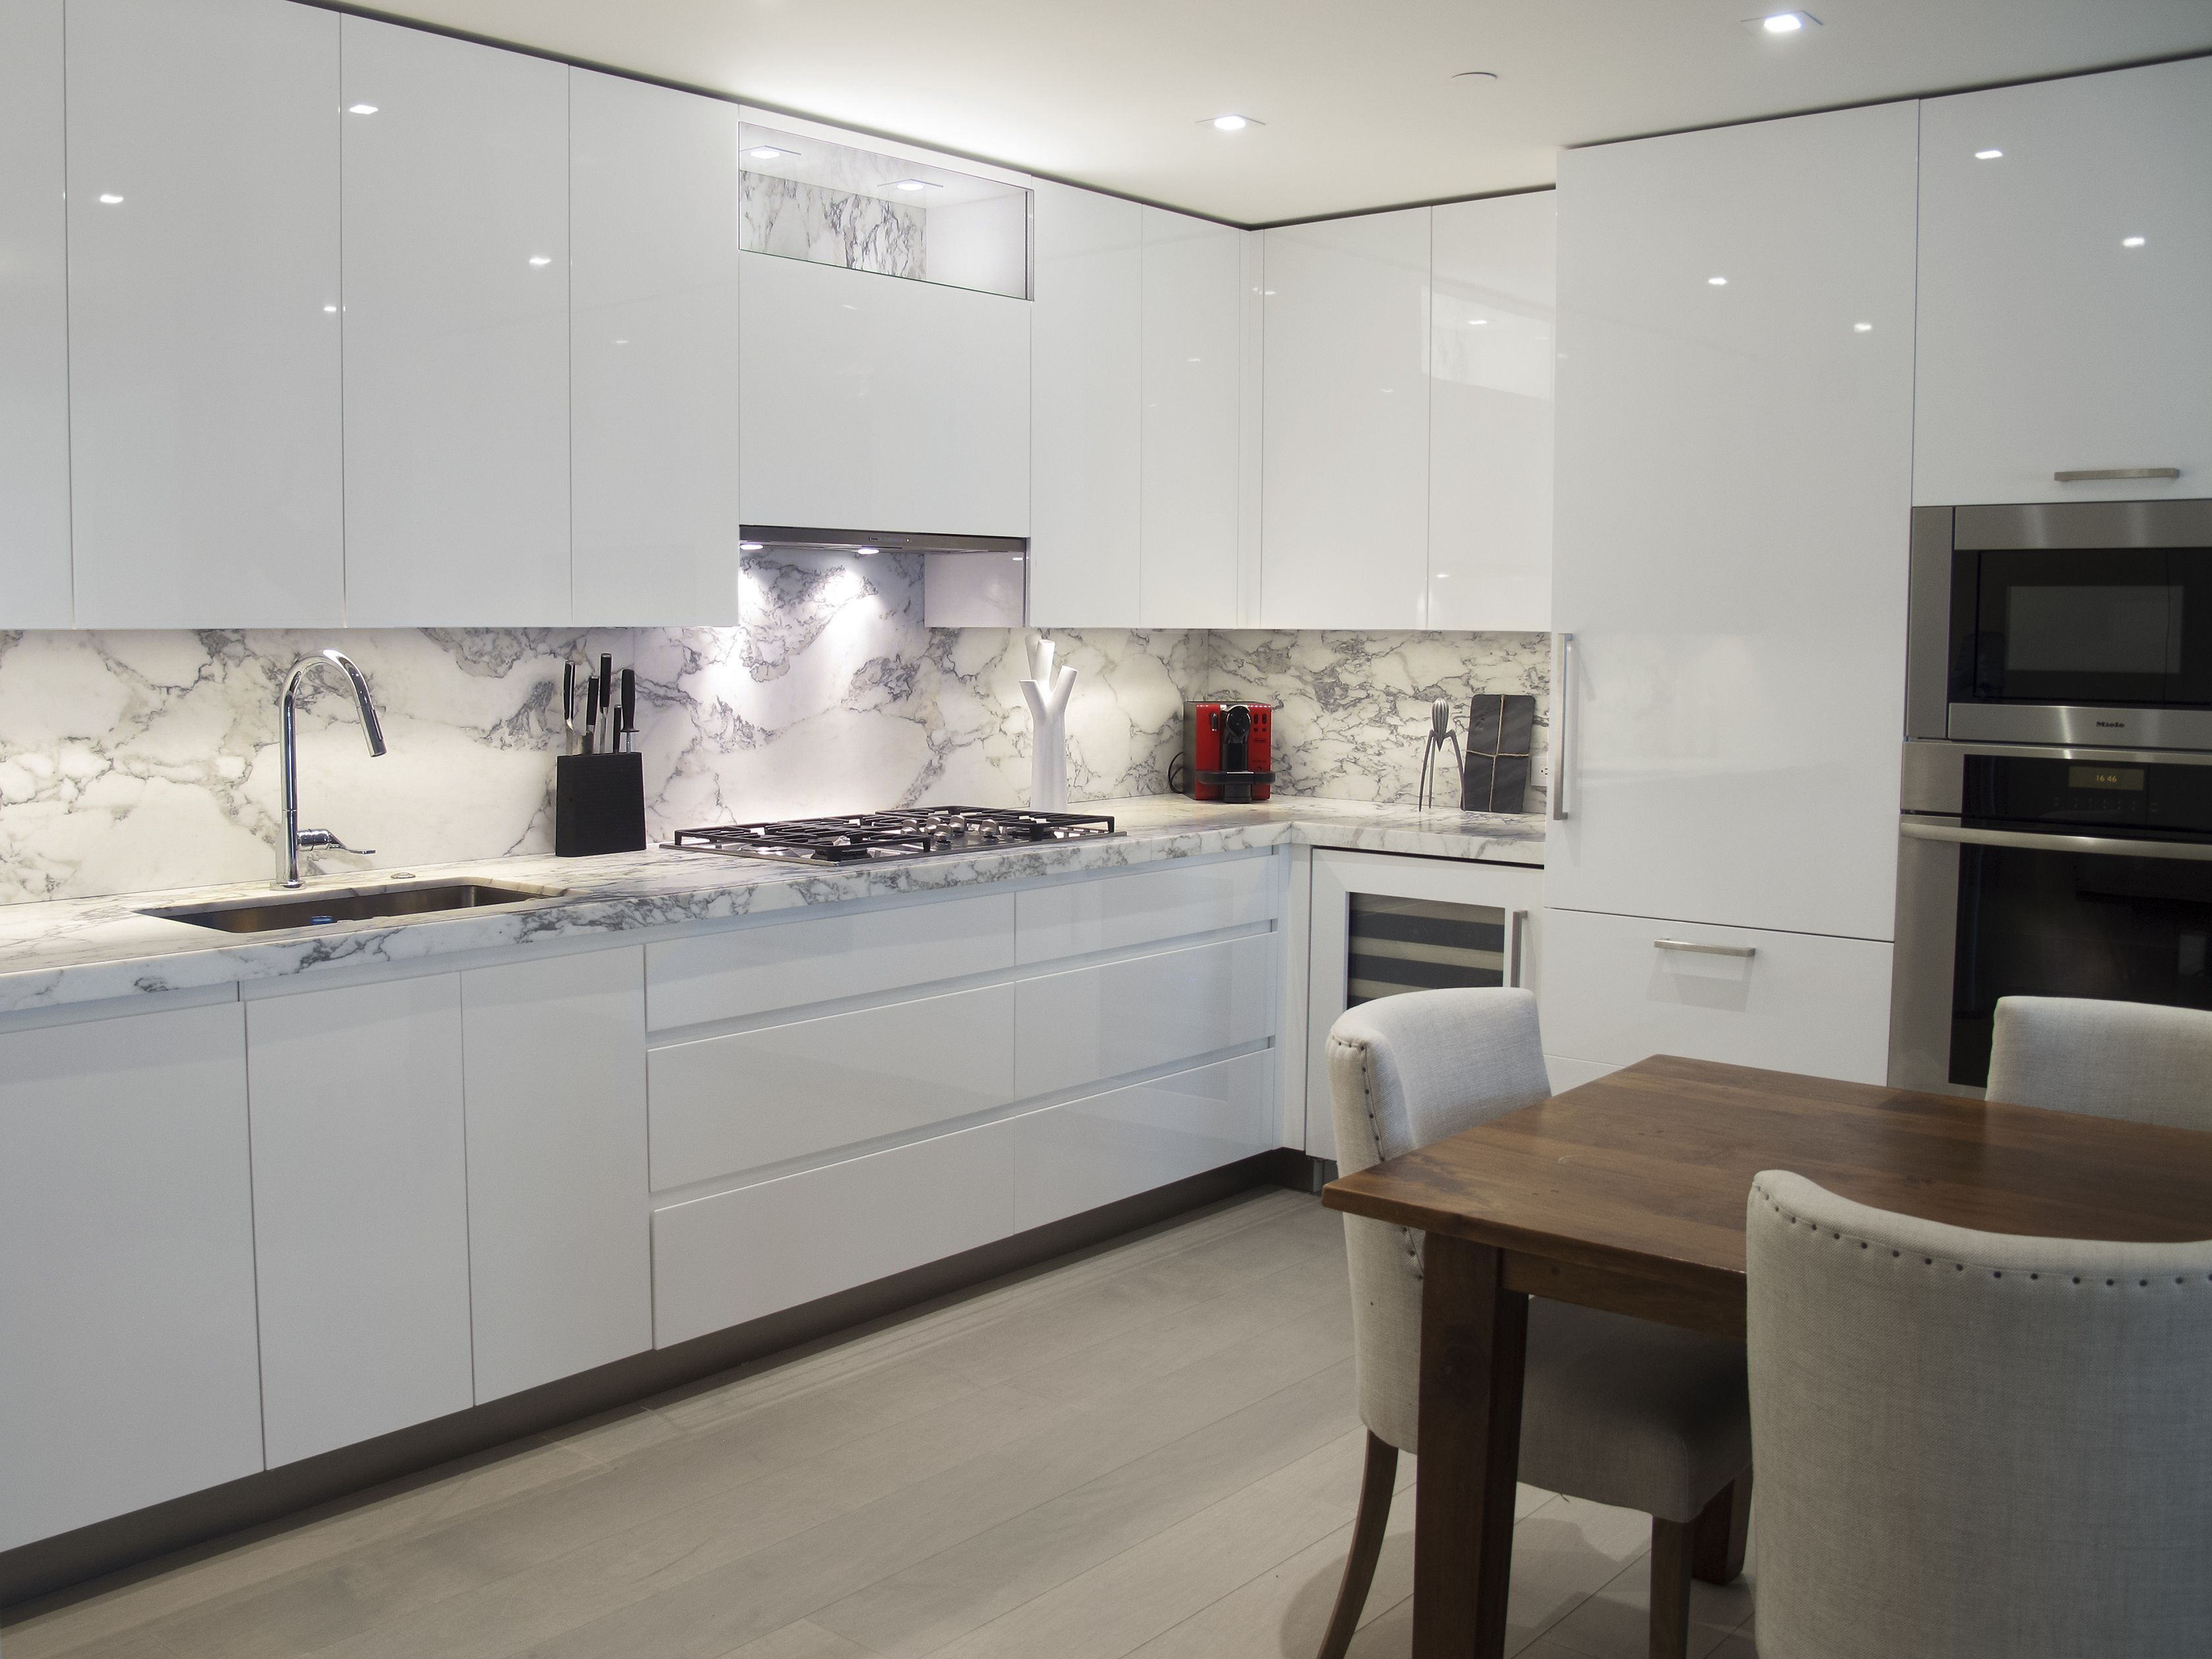 Image Result For White Gloss Cabinets With Marble Backsplash